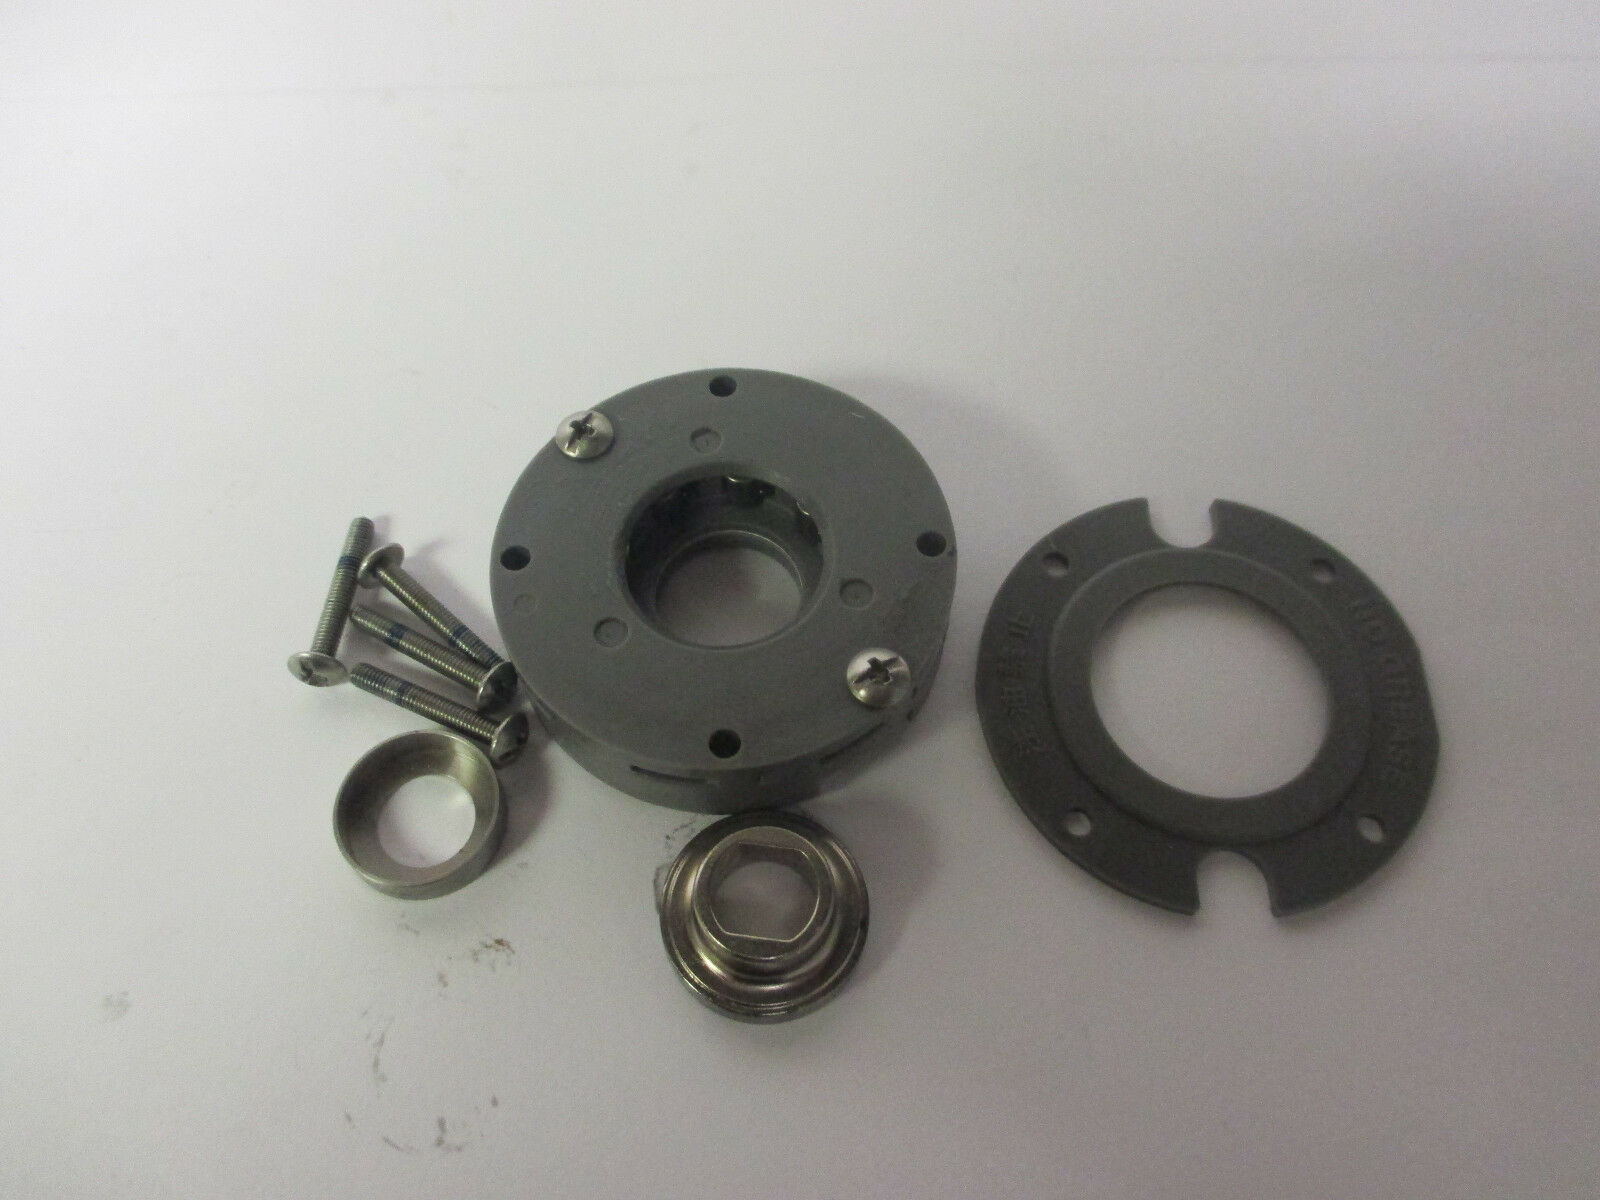 USED SHIMANO SPINNING REEL PART - Stella 6000F - Roller Clutch Assembly